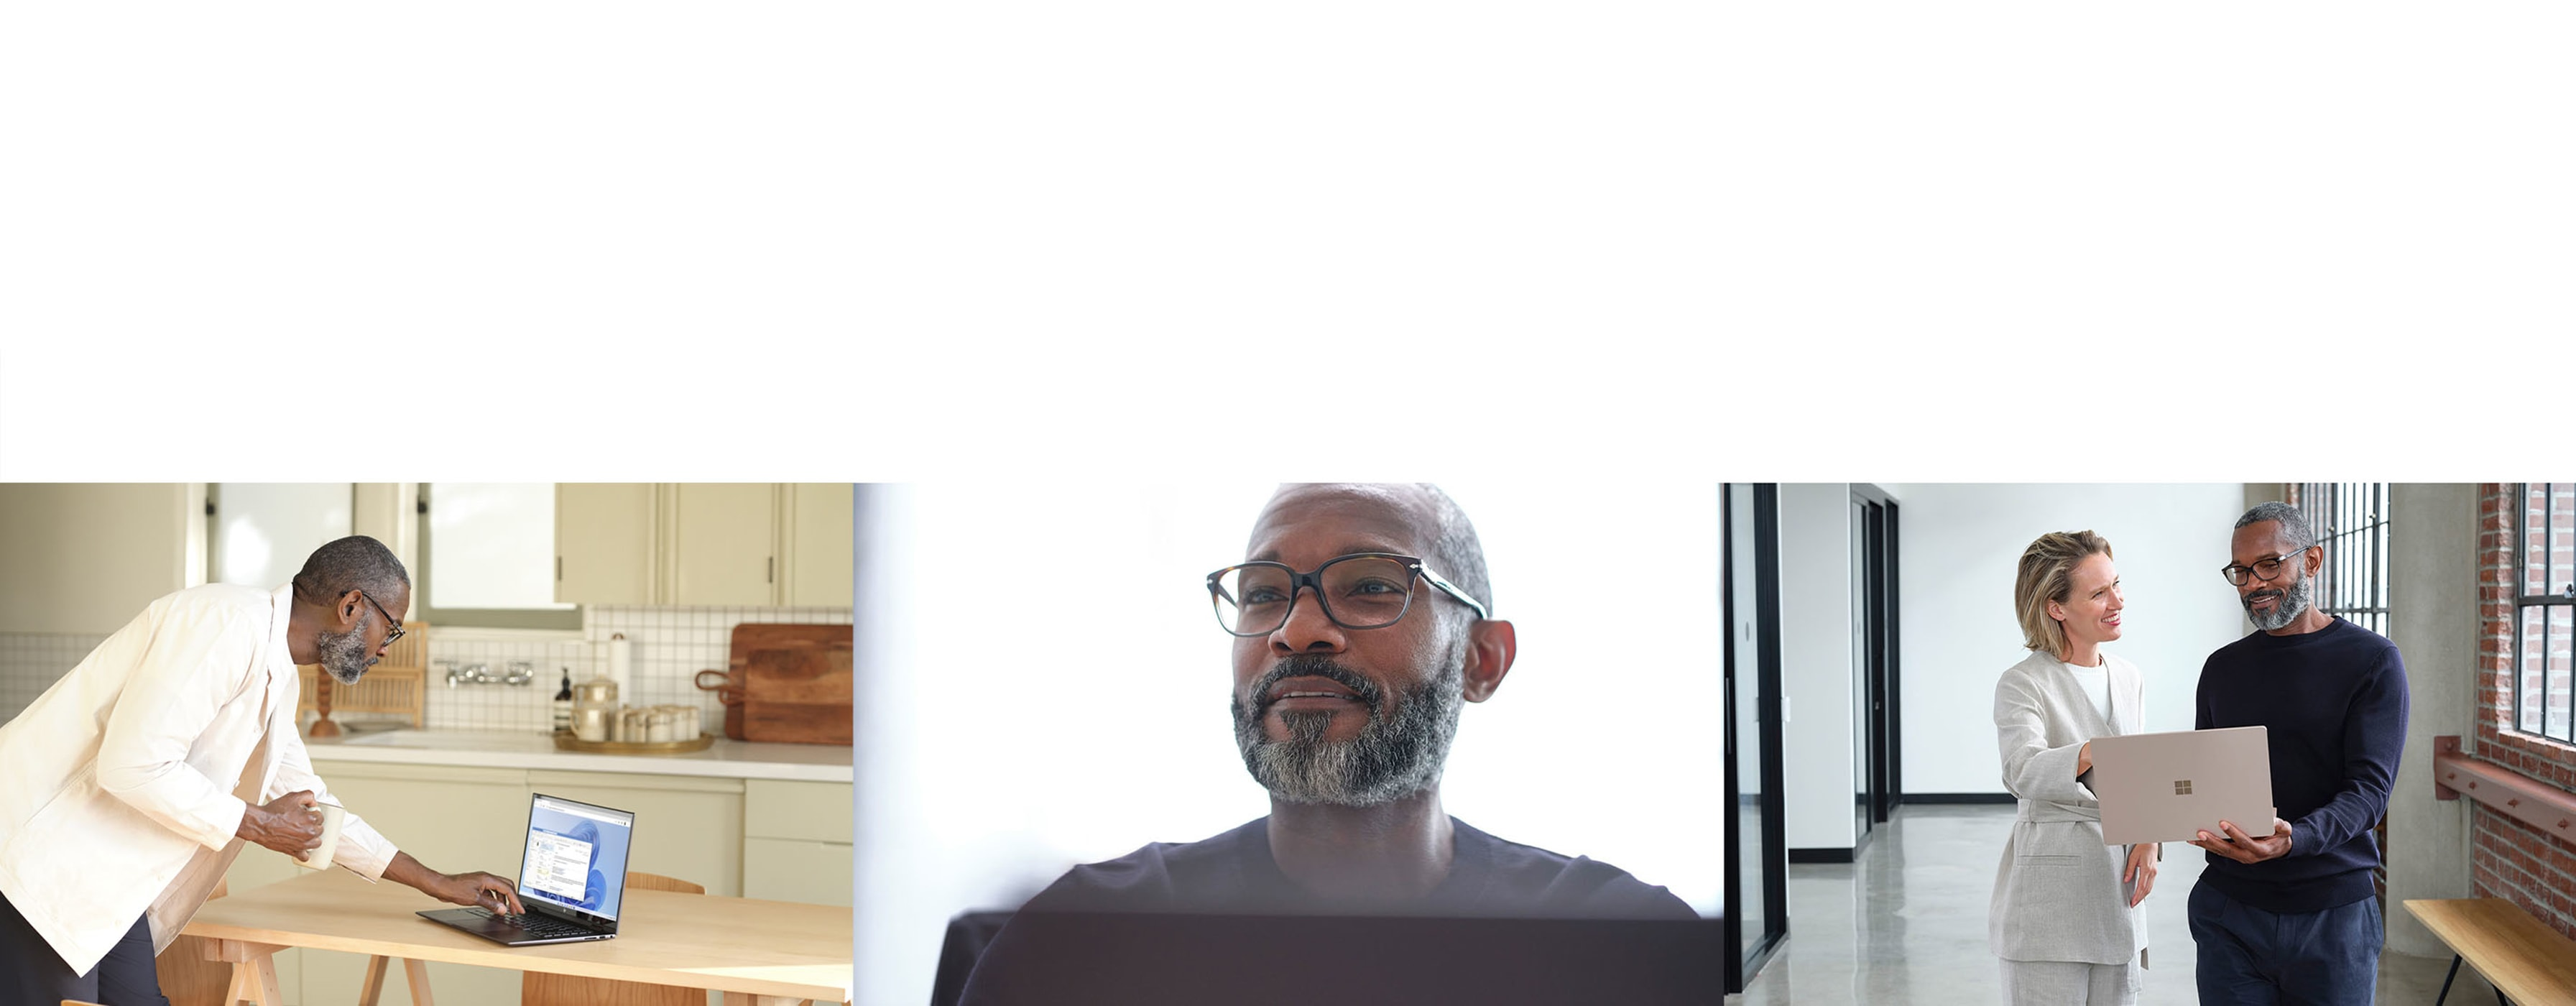 A view of a person using a laptop in their kitchen, a view of them smiling and a view of them showing a coworker something on a laptop.